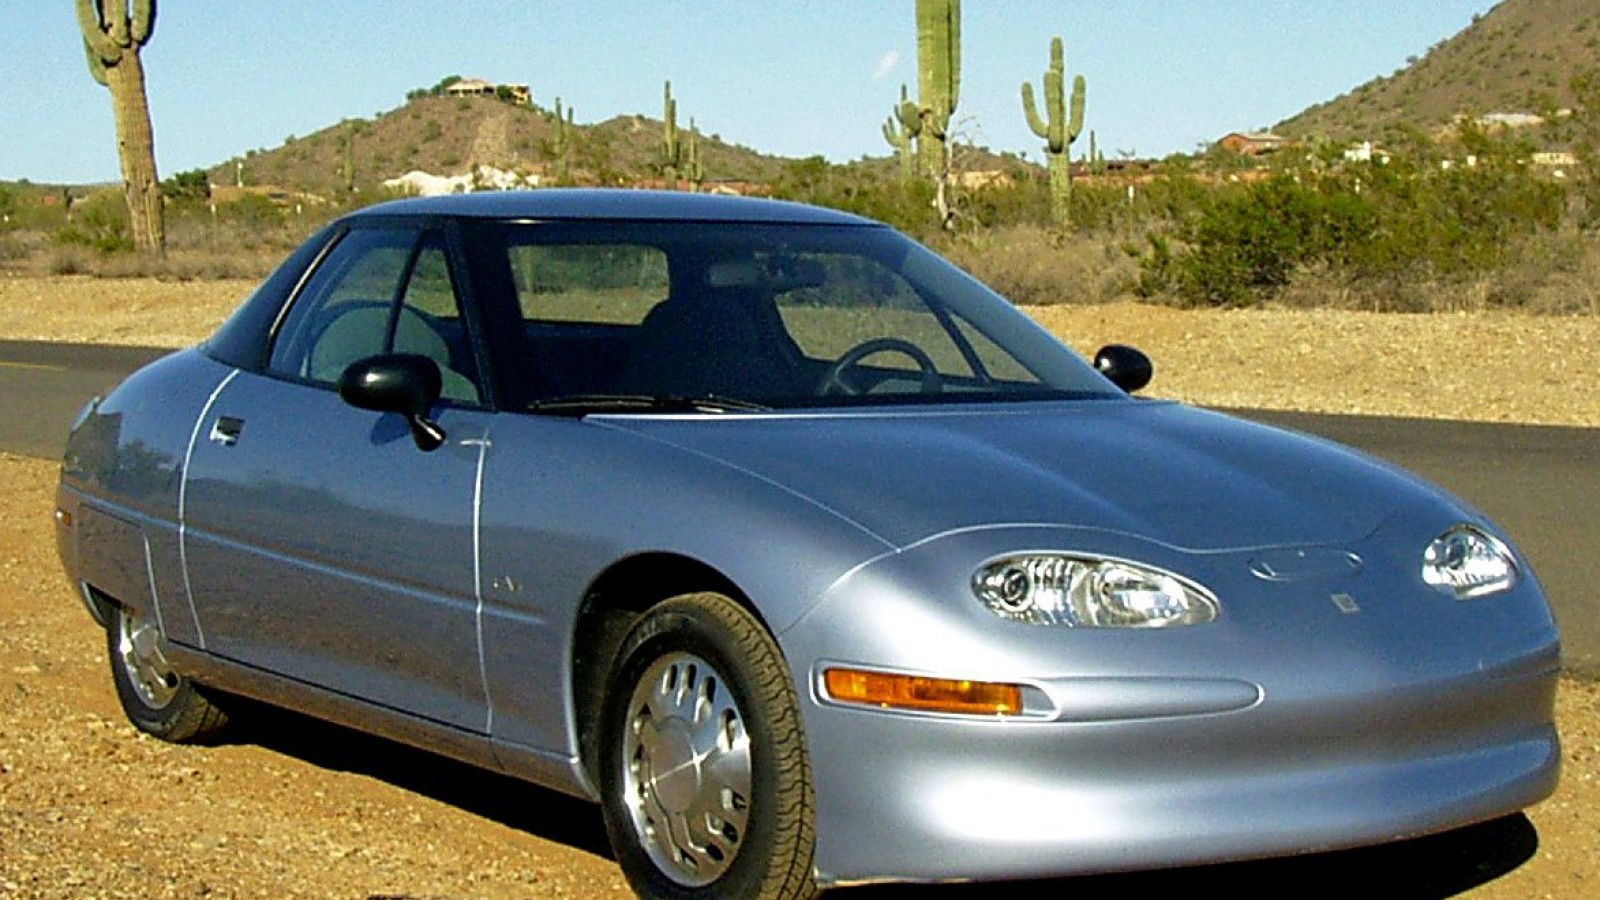 10 classic electric cars you never knew existed - General Motors EV1 2